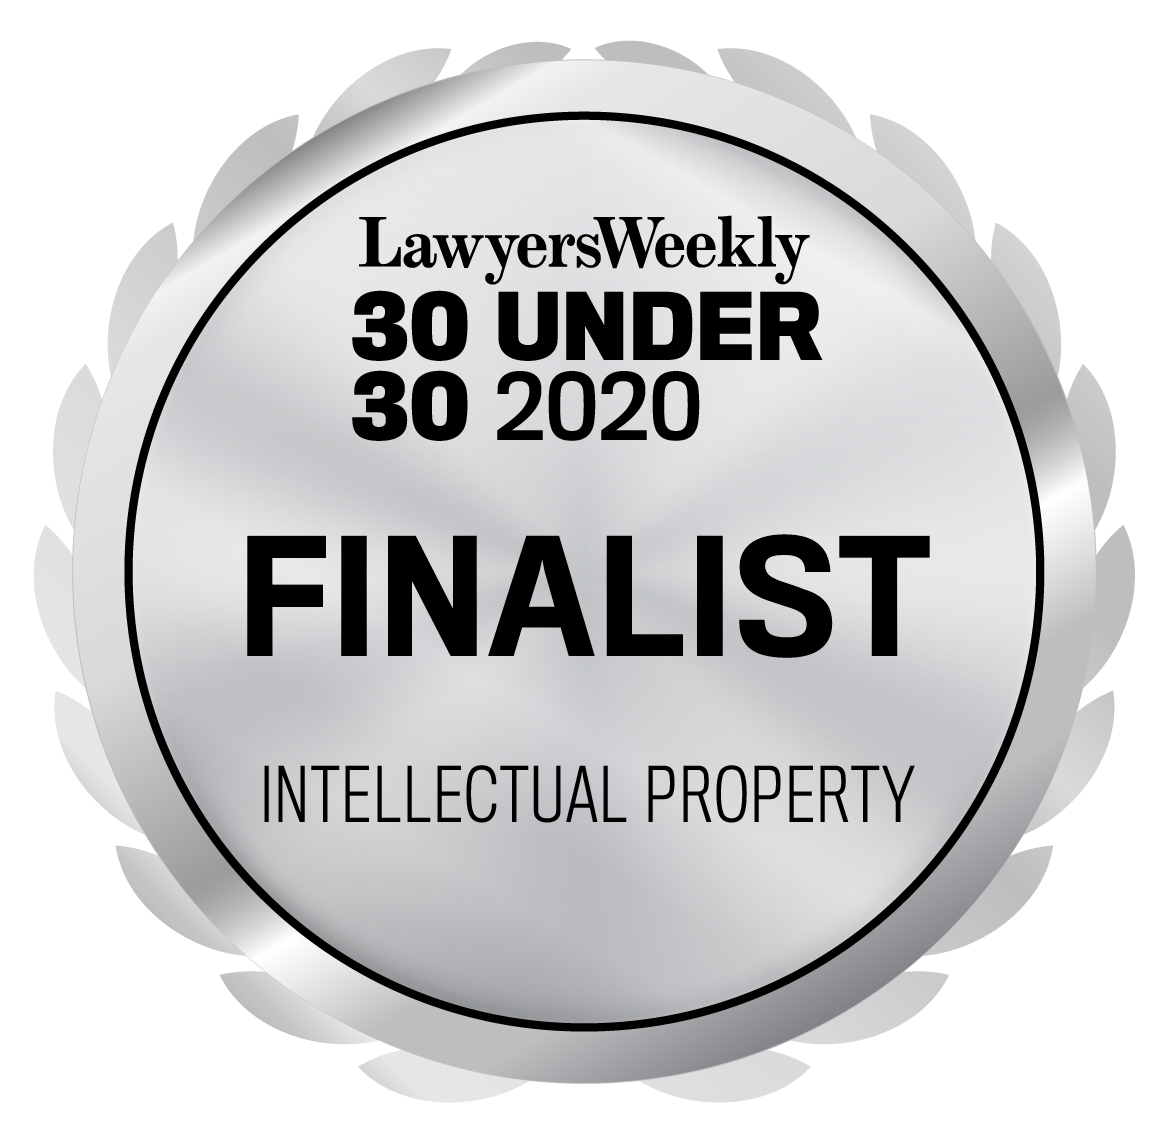 30 Under 30 Awards - Intellectual Property - Finalist - 2020